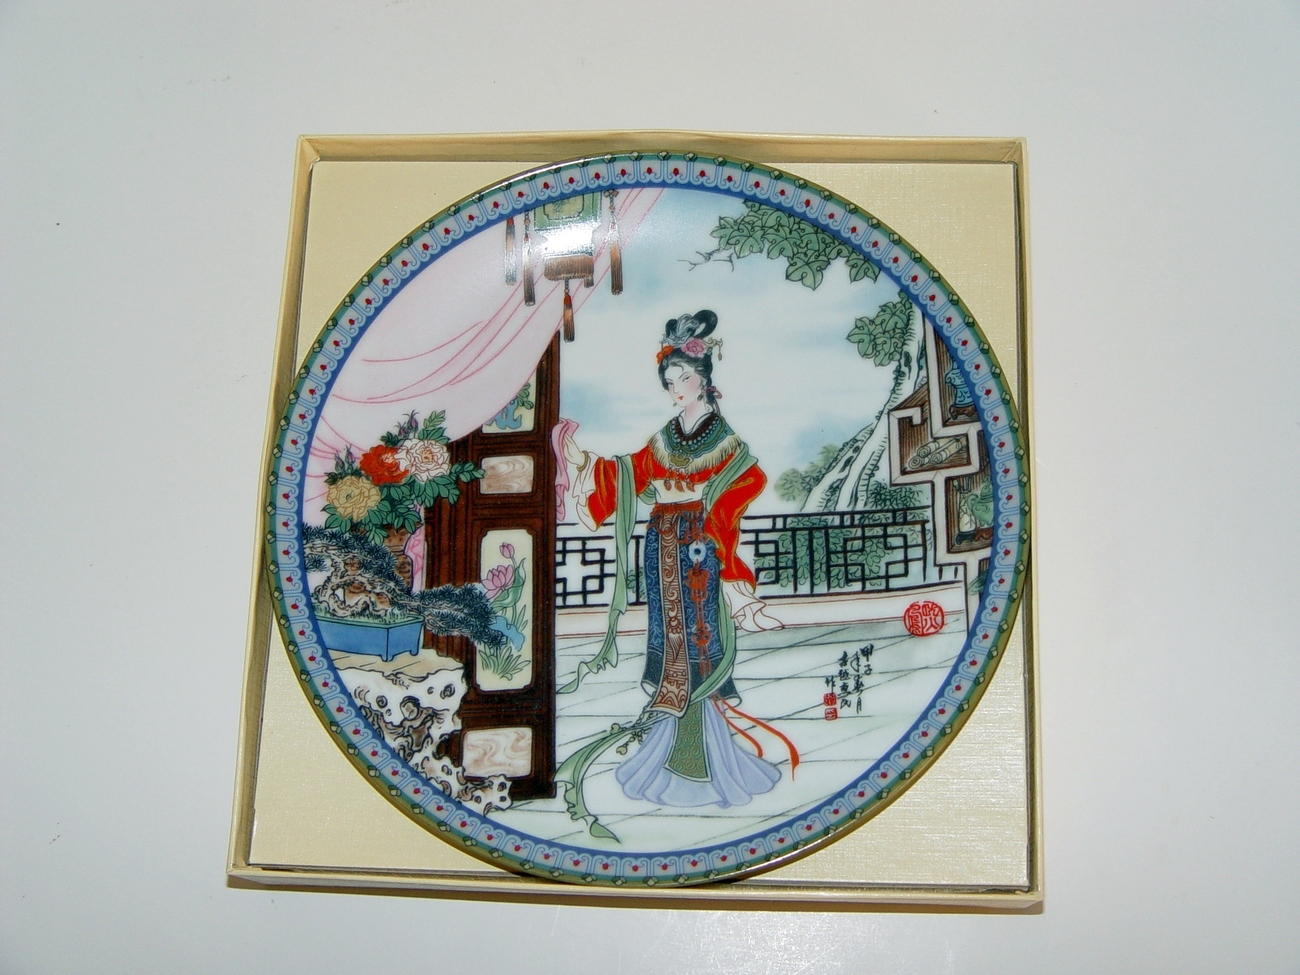 Beauties of the Red Mansion Series Plate # 3, HSI-CHUN  by Zhao Hui Min